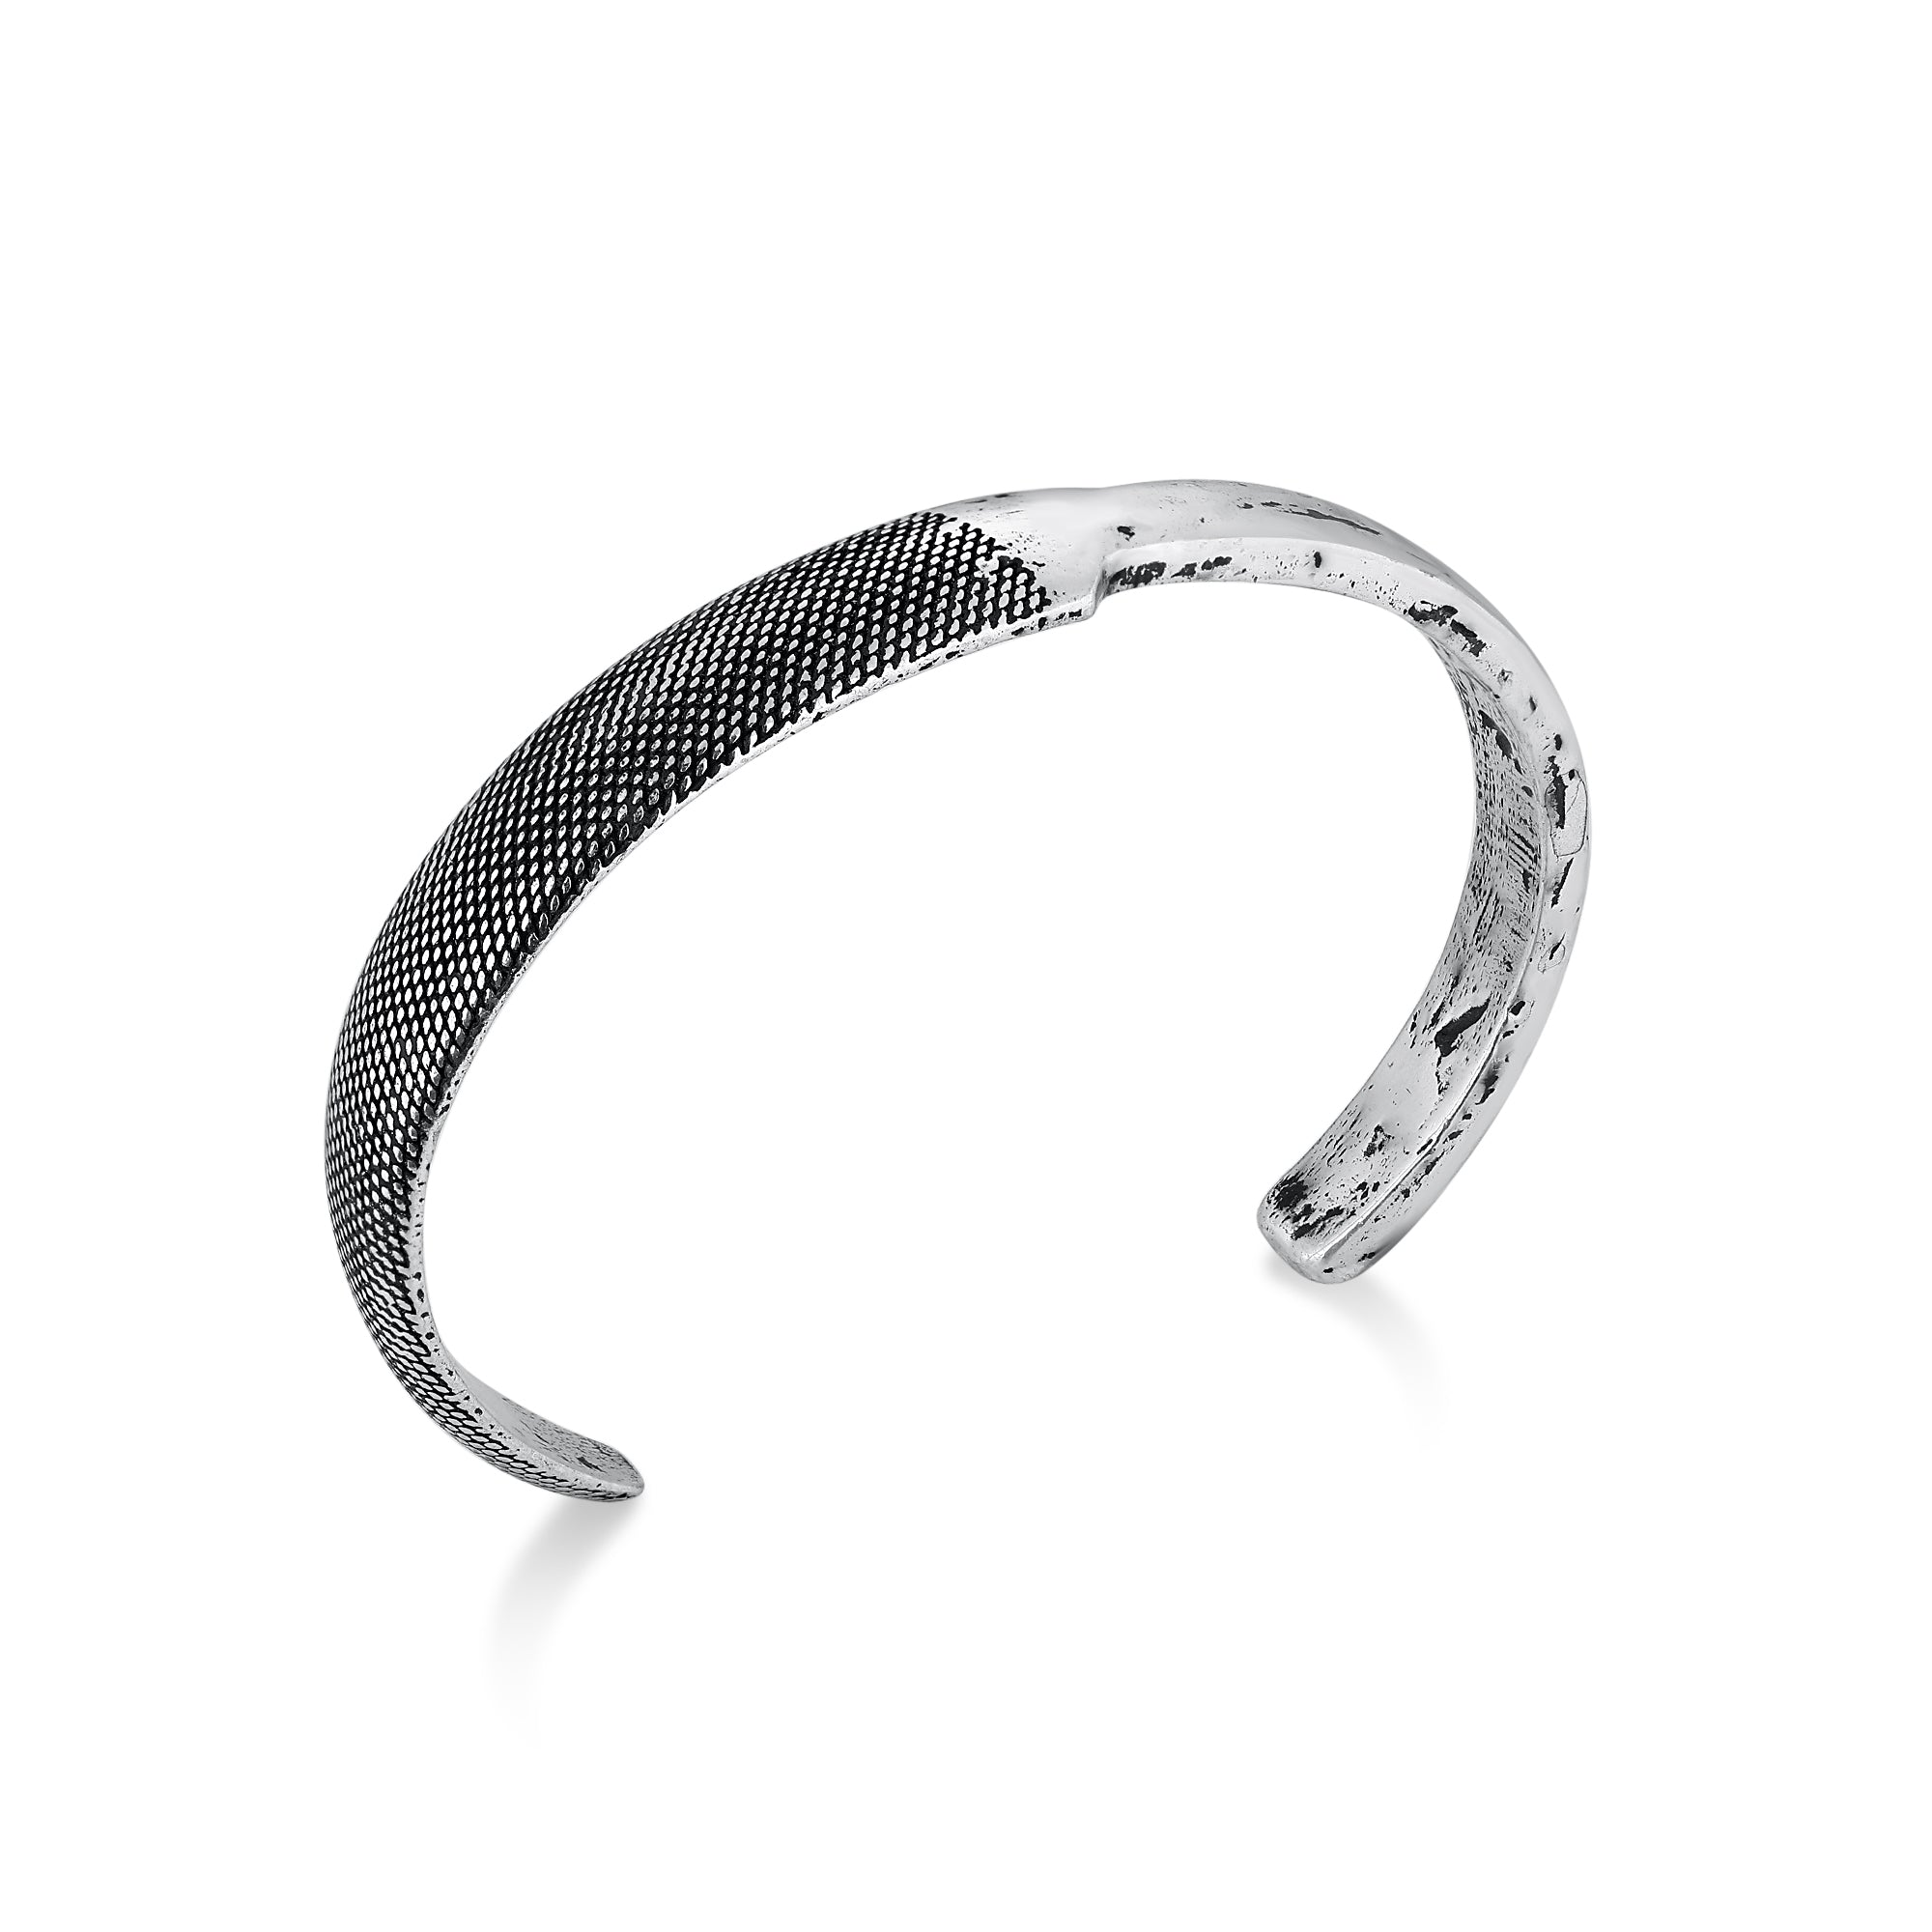 Narrow Cuff Bracelet with Dual Texture